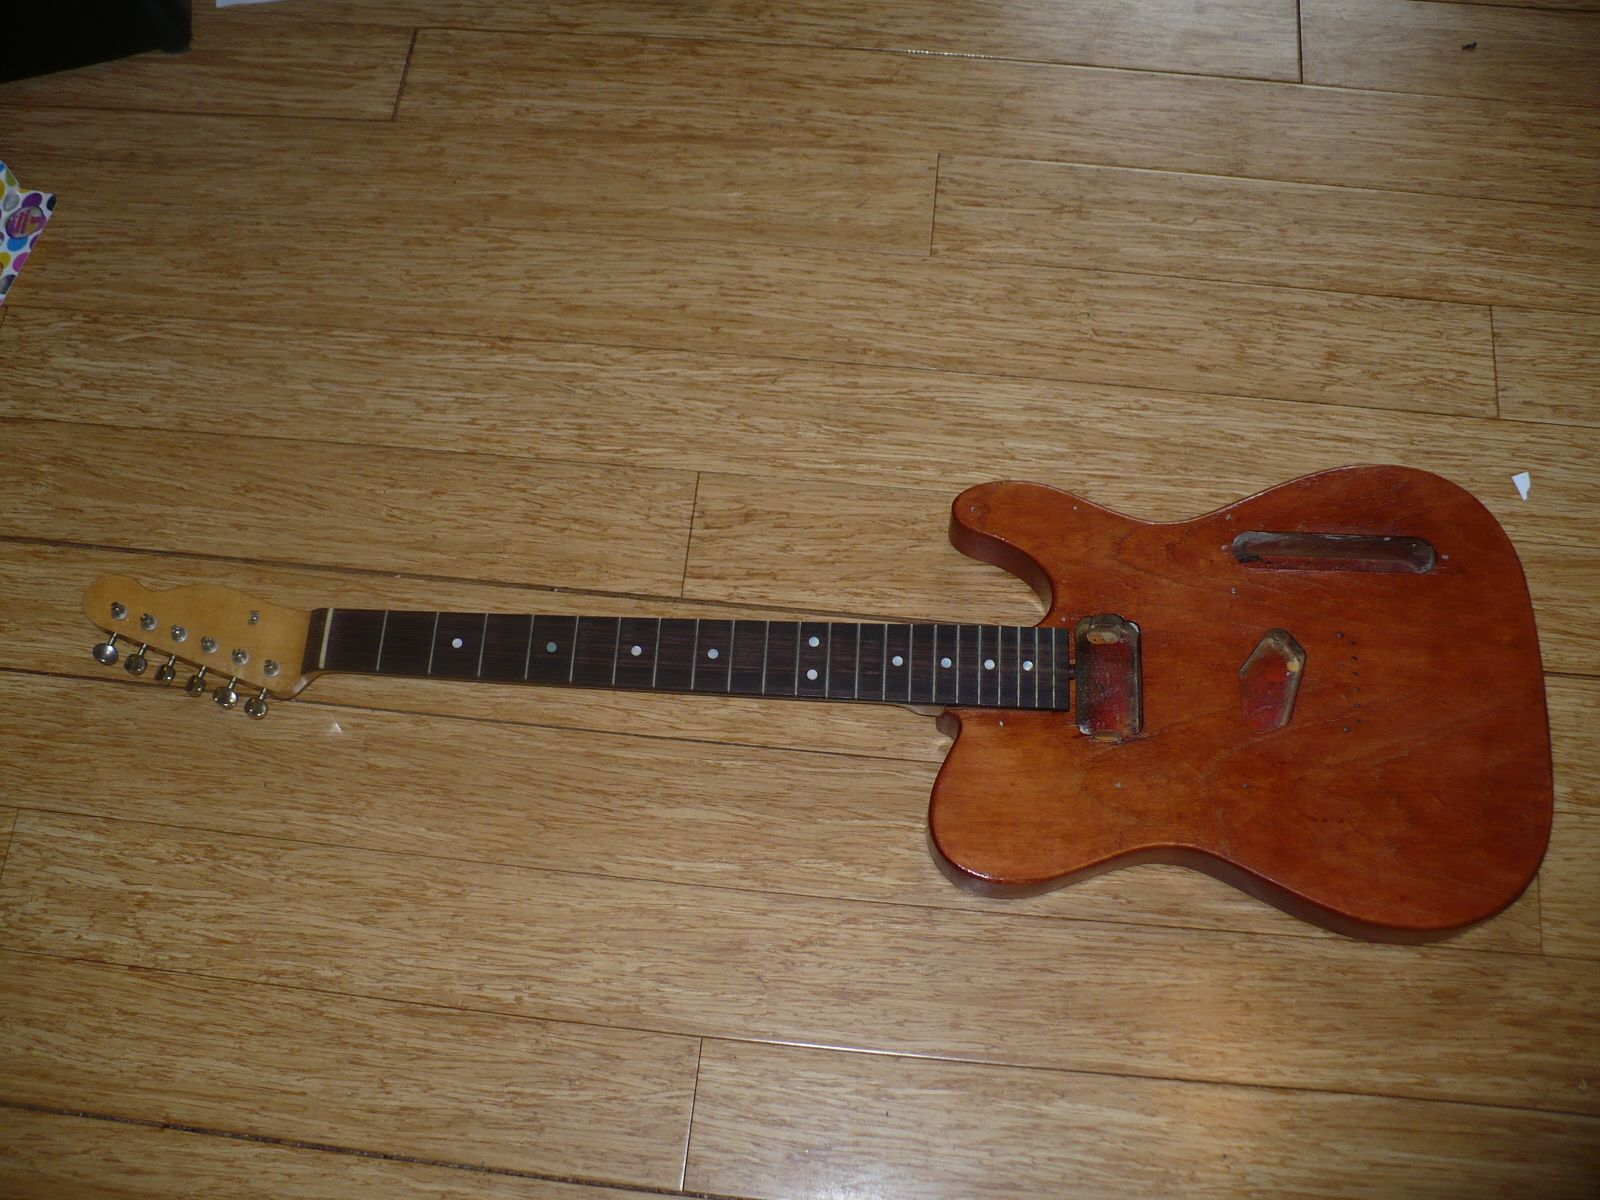 Neck on no wiring yet great friends telecaster give